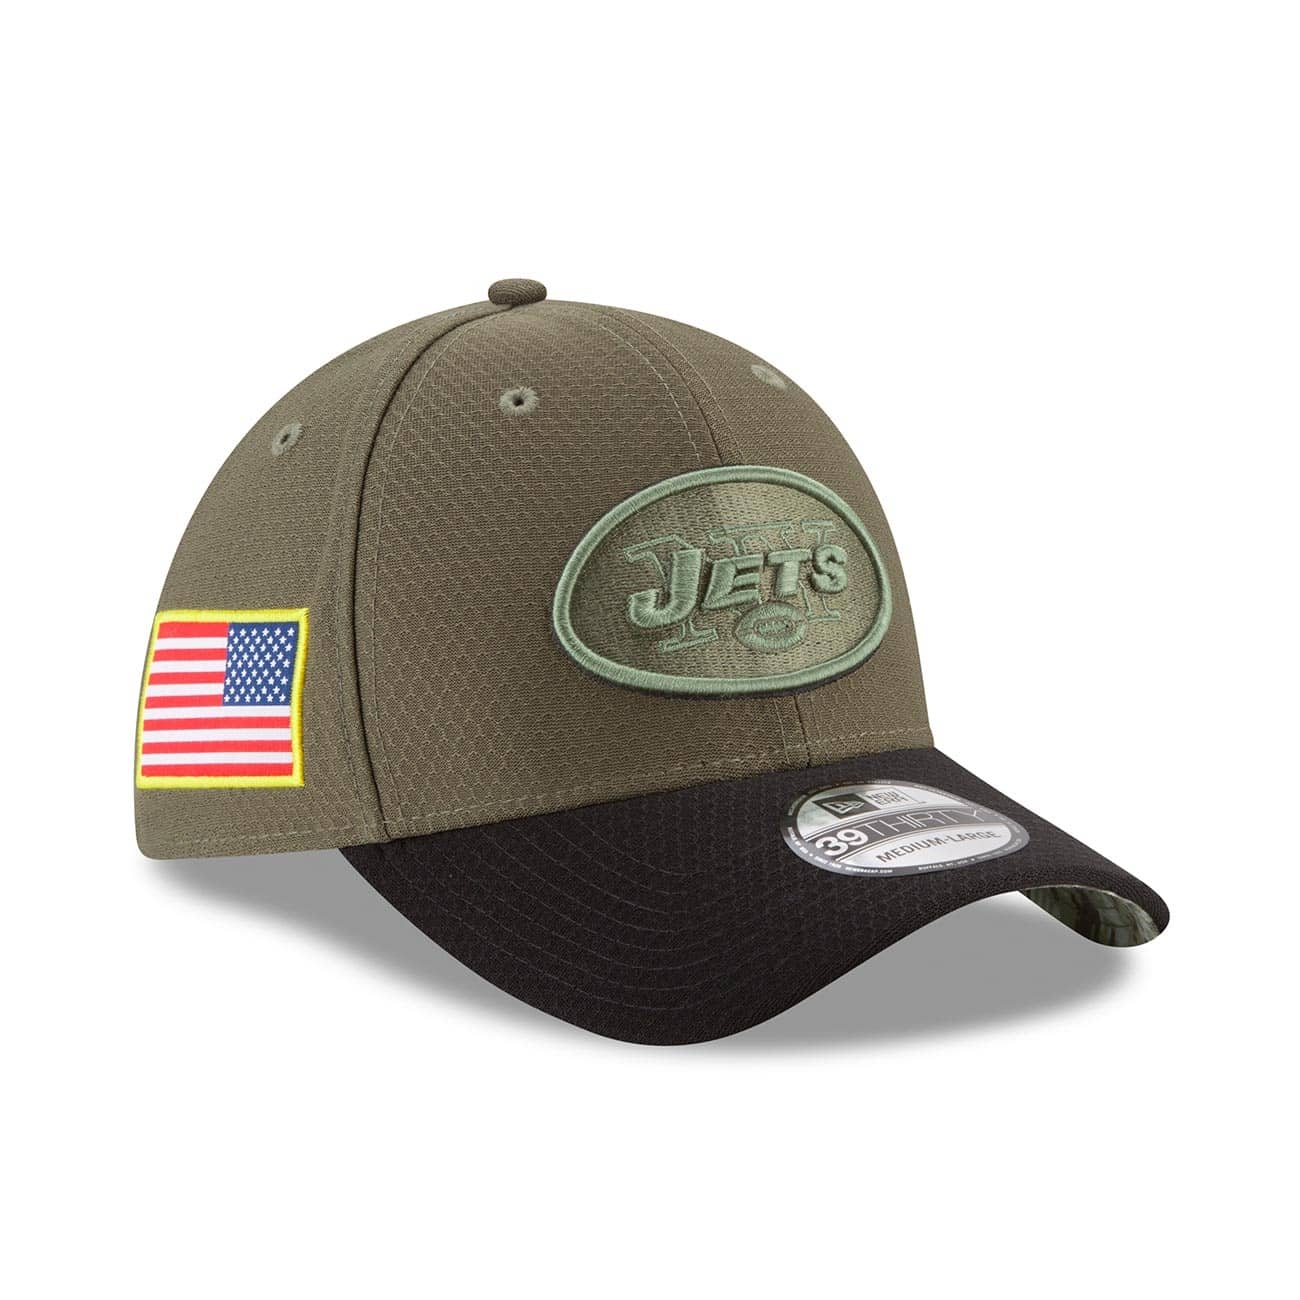 35b73cfd5 New Era New York Jets 2017 Salute to Service 39THIRTY NFL Cap ...